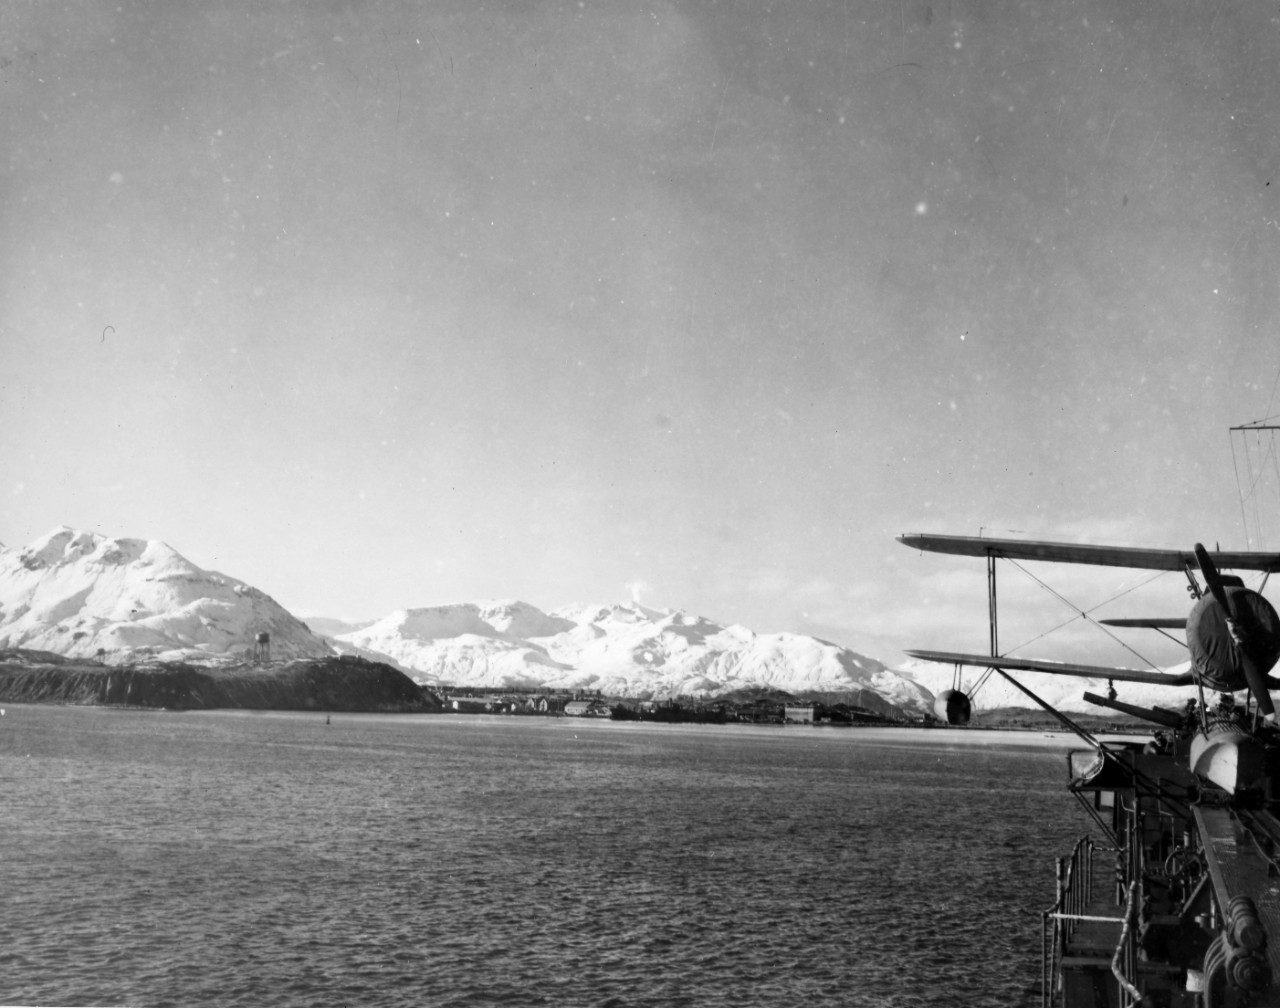 Sailing into Dutch Harbor, October-November 1942. From the VADM Robert C. Giffen Photo Collection.